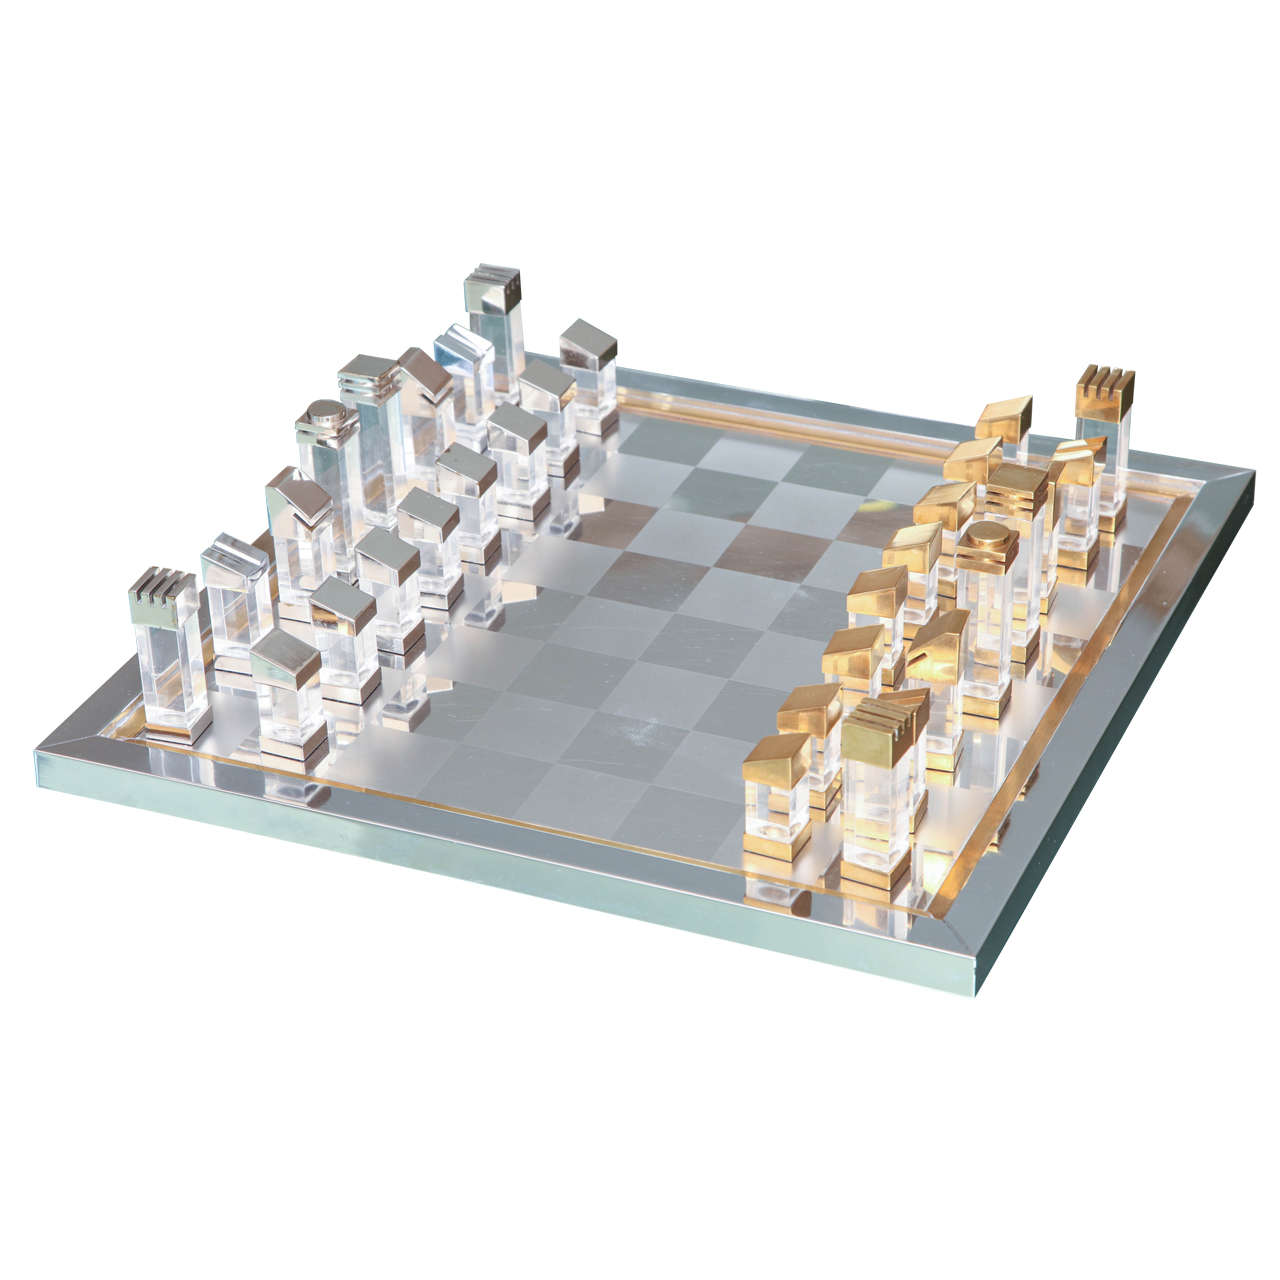 Steel Chess Set romeo rega chess set in lucite, brass and chrome at 1stdibs